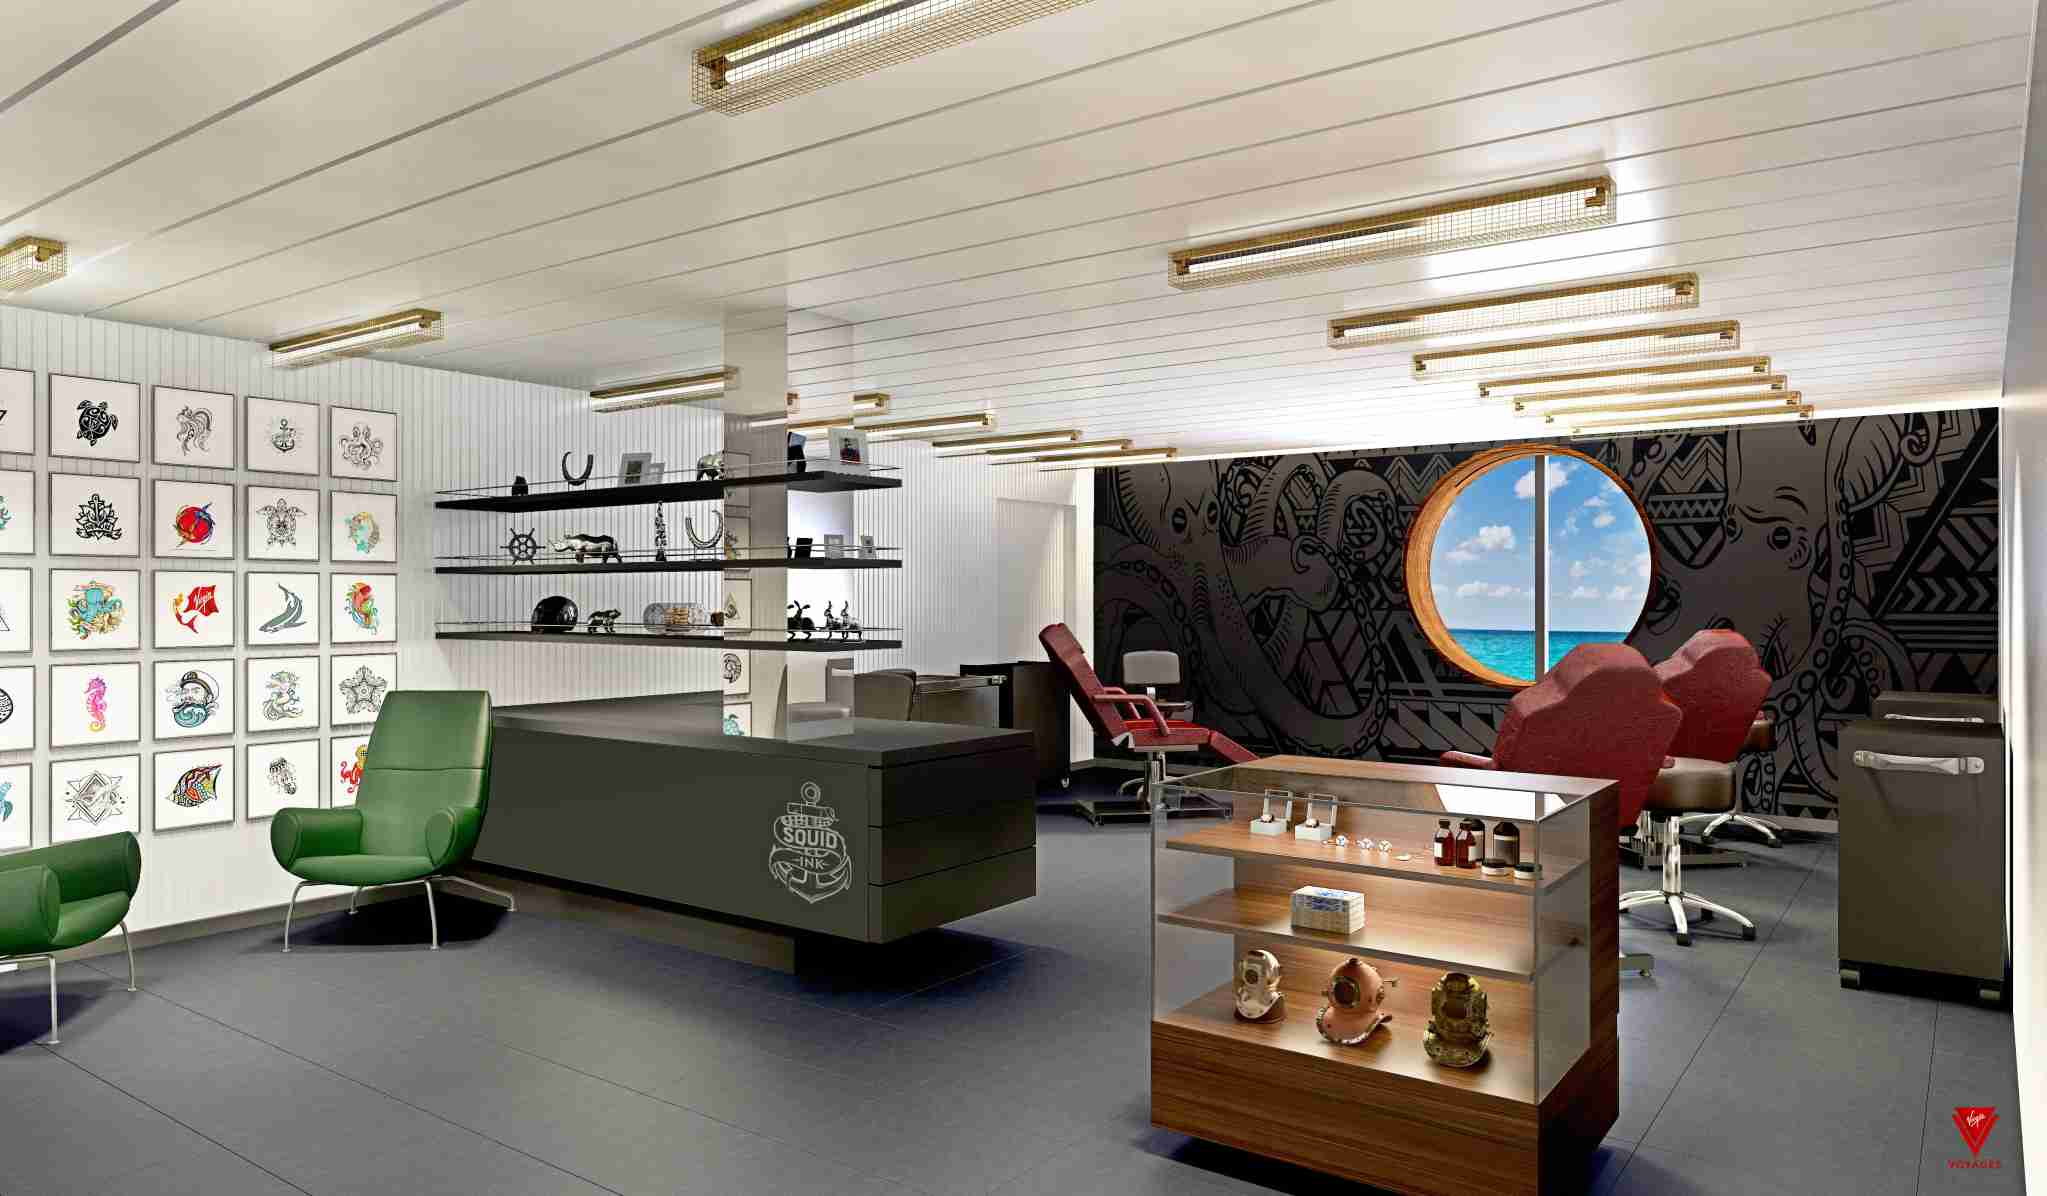 Get a tattoo during your cruise. (Image courtesy of Virgin Voyages)